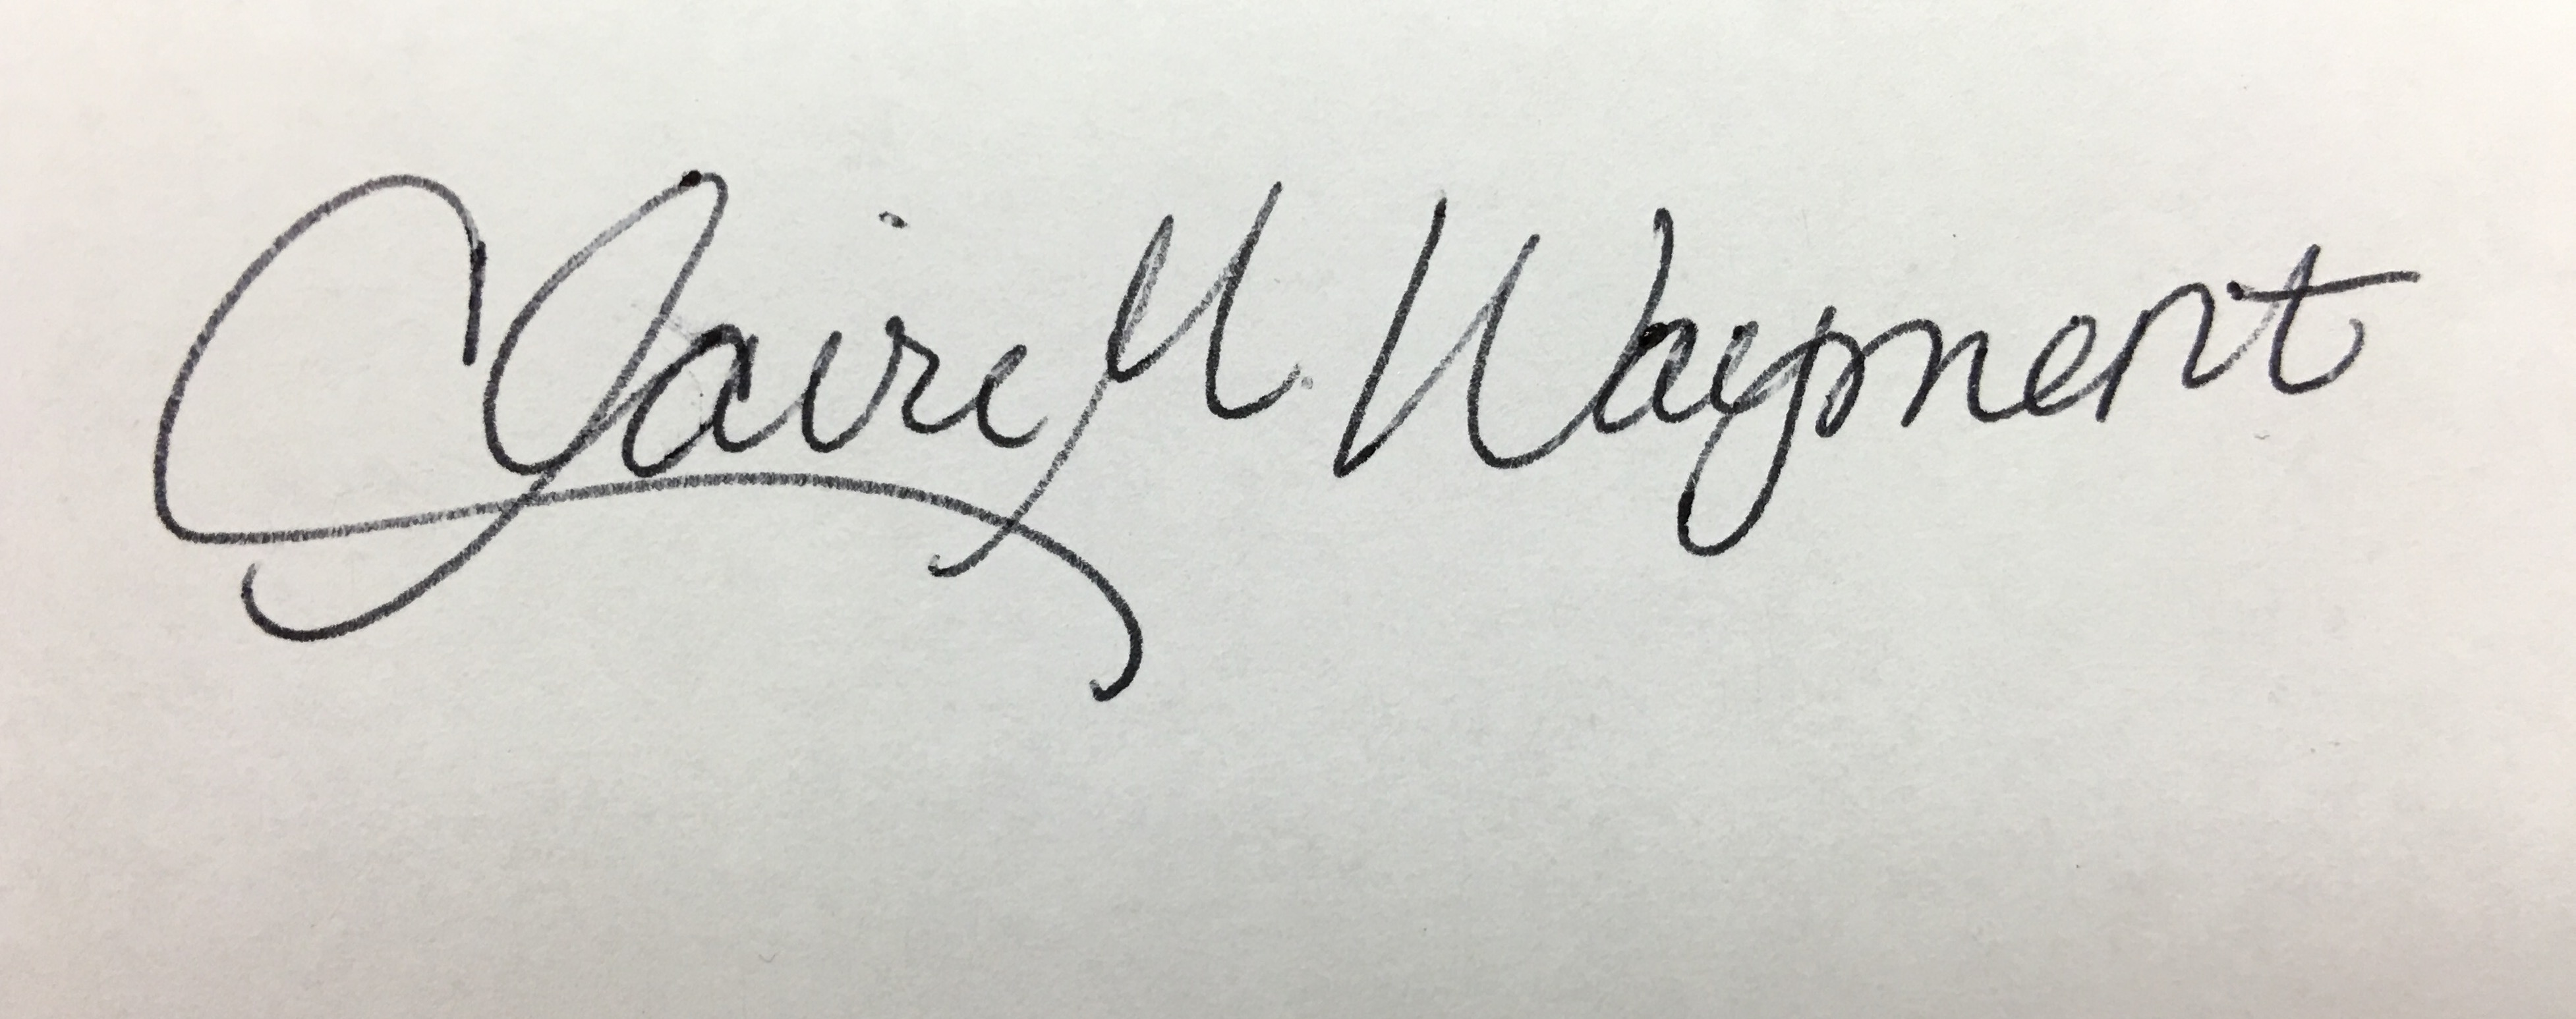 claire Wayment Signature